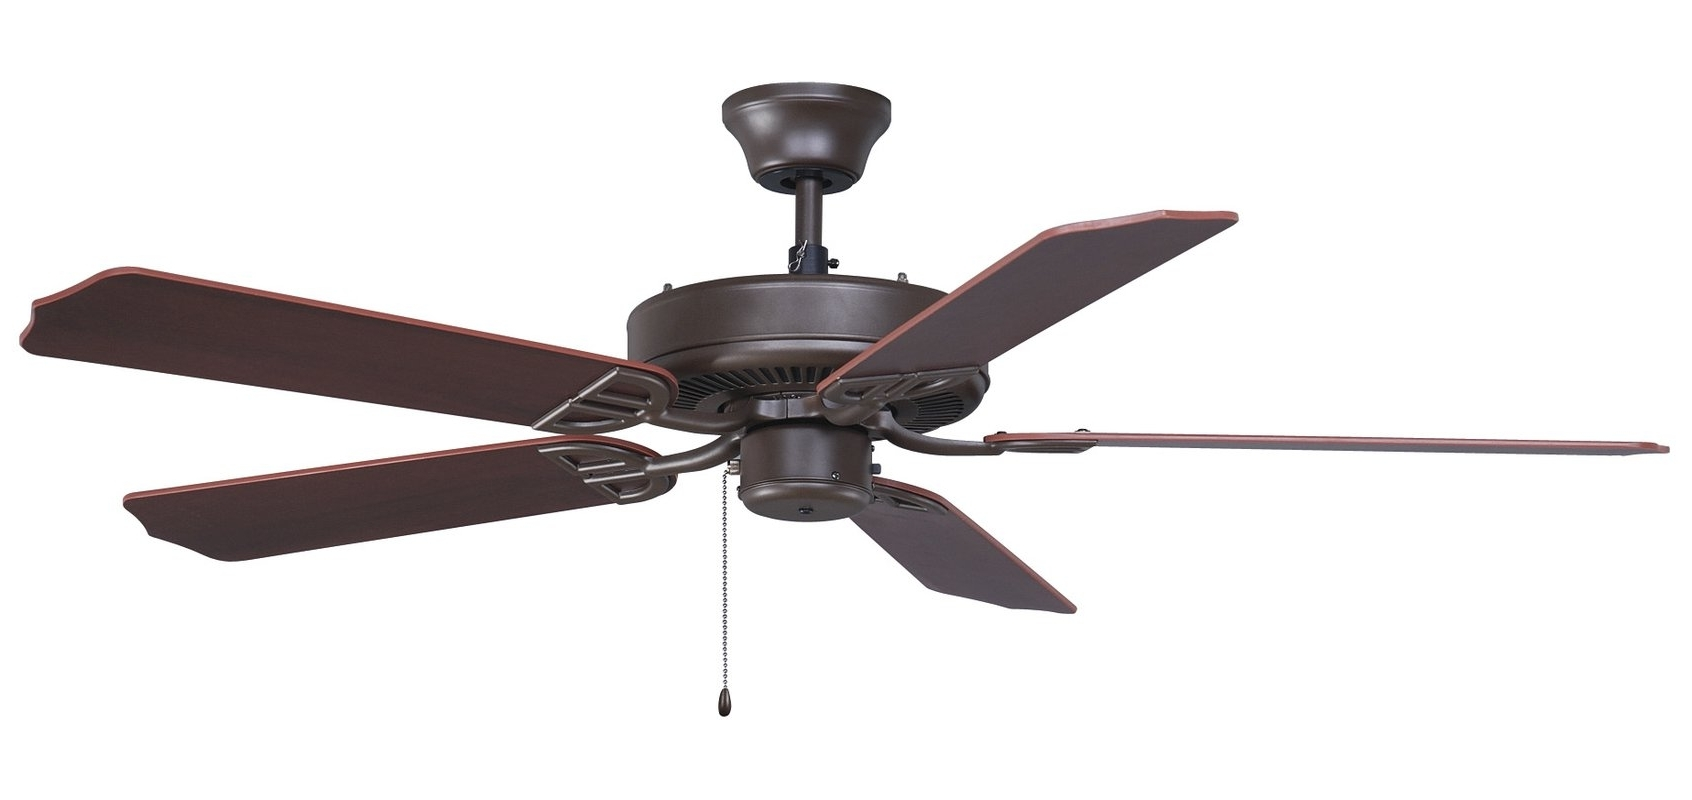 Outdoor Ceiling Fans With Removable Blades Throughout Most Recent Wet Rated Outdoor Ceiling Fans (View 14 of 20)